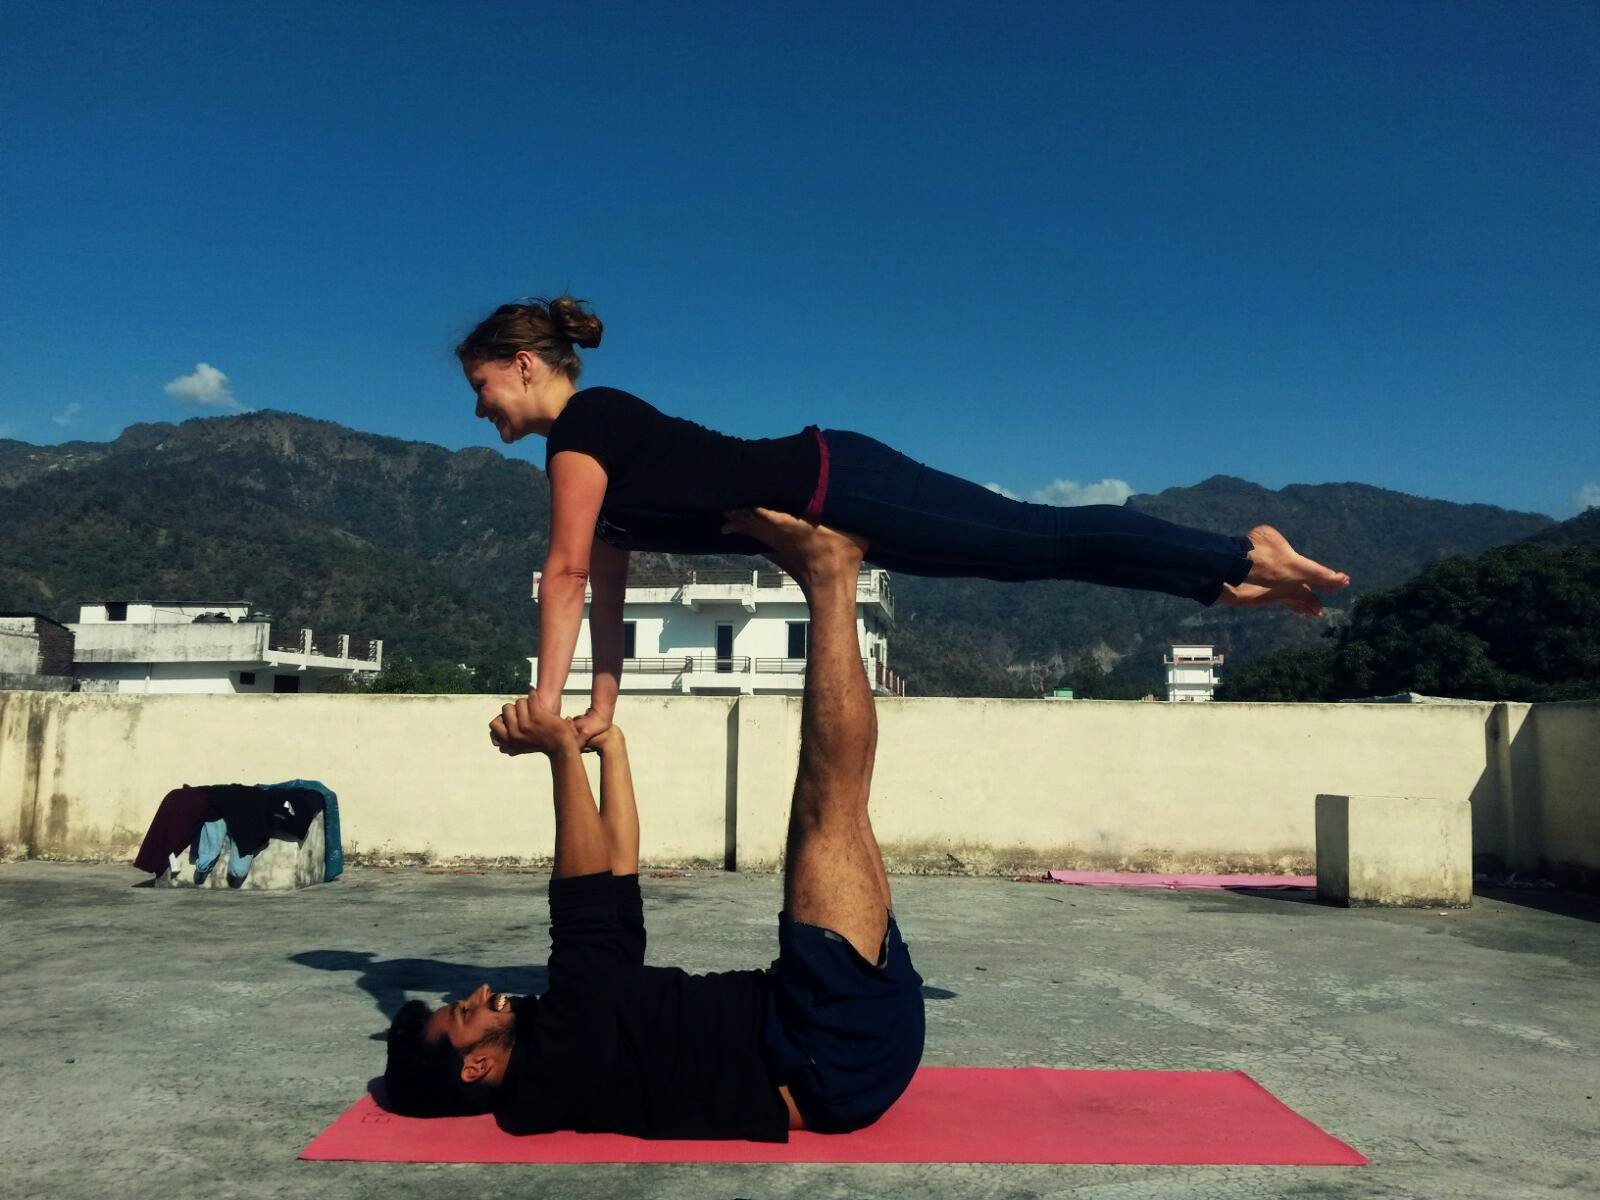 Trying Acro Yoga